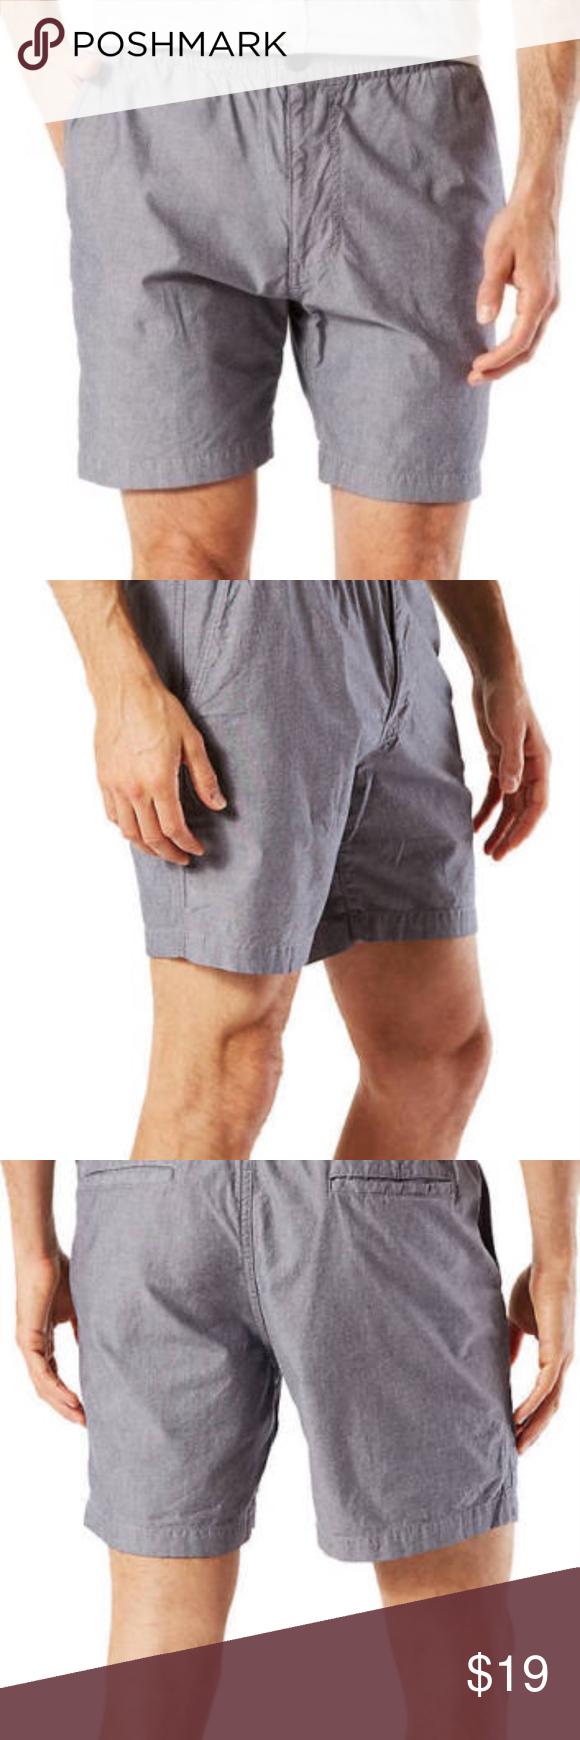 77b4e268d6 Mens Dockers Weekend Cruiser Shorts Grey Dockers Weekend -Cruiser Shorts  Colors: Beige, Gray, Blue, Gray and white stripes MSRP $50 Elastic  waistband with ...